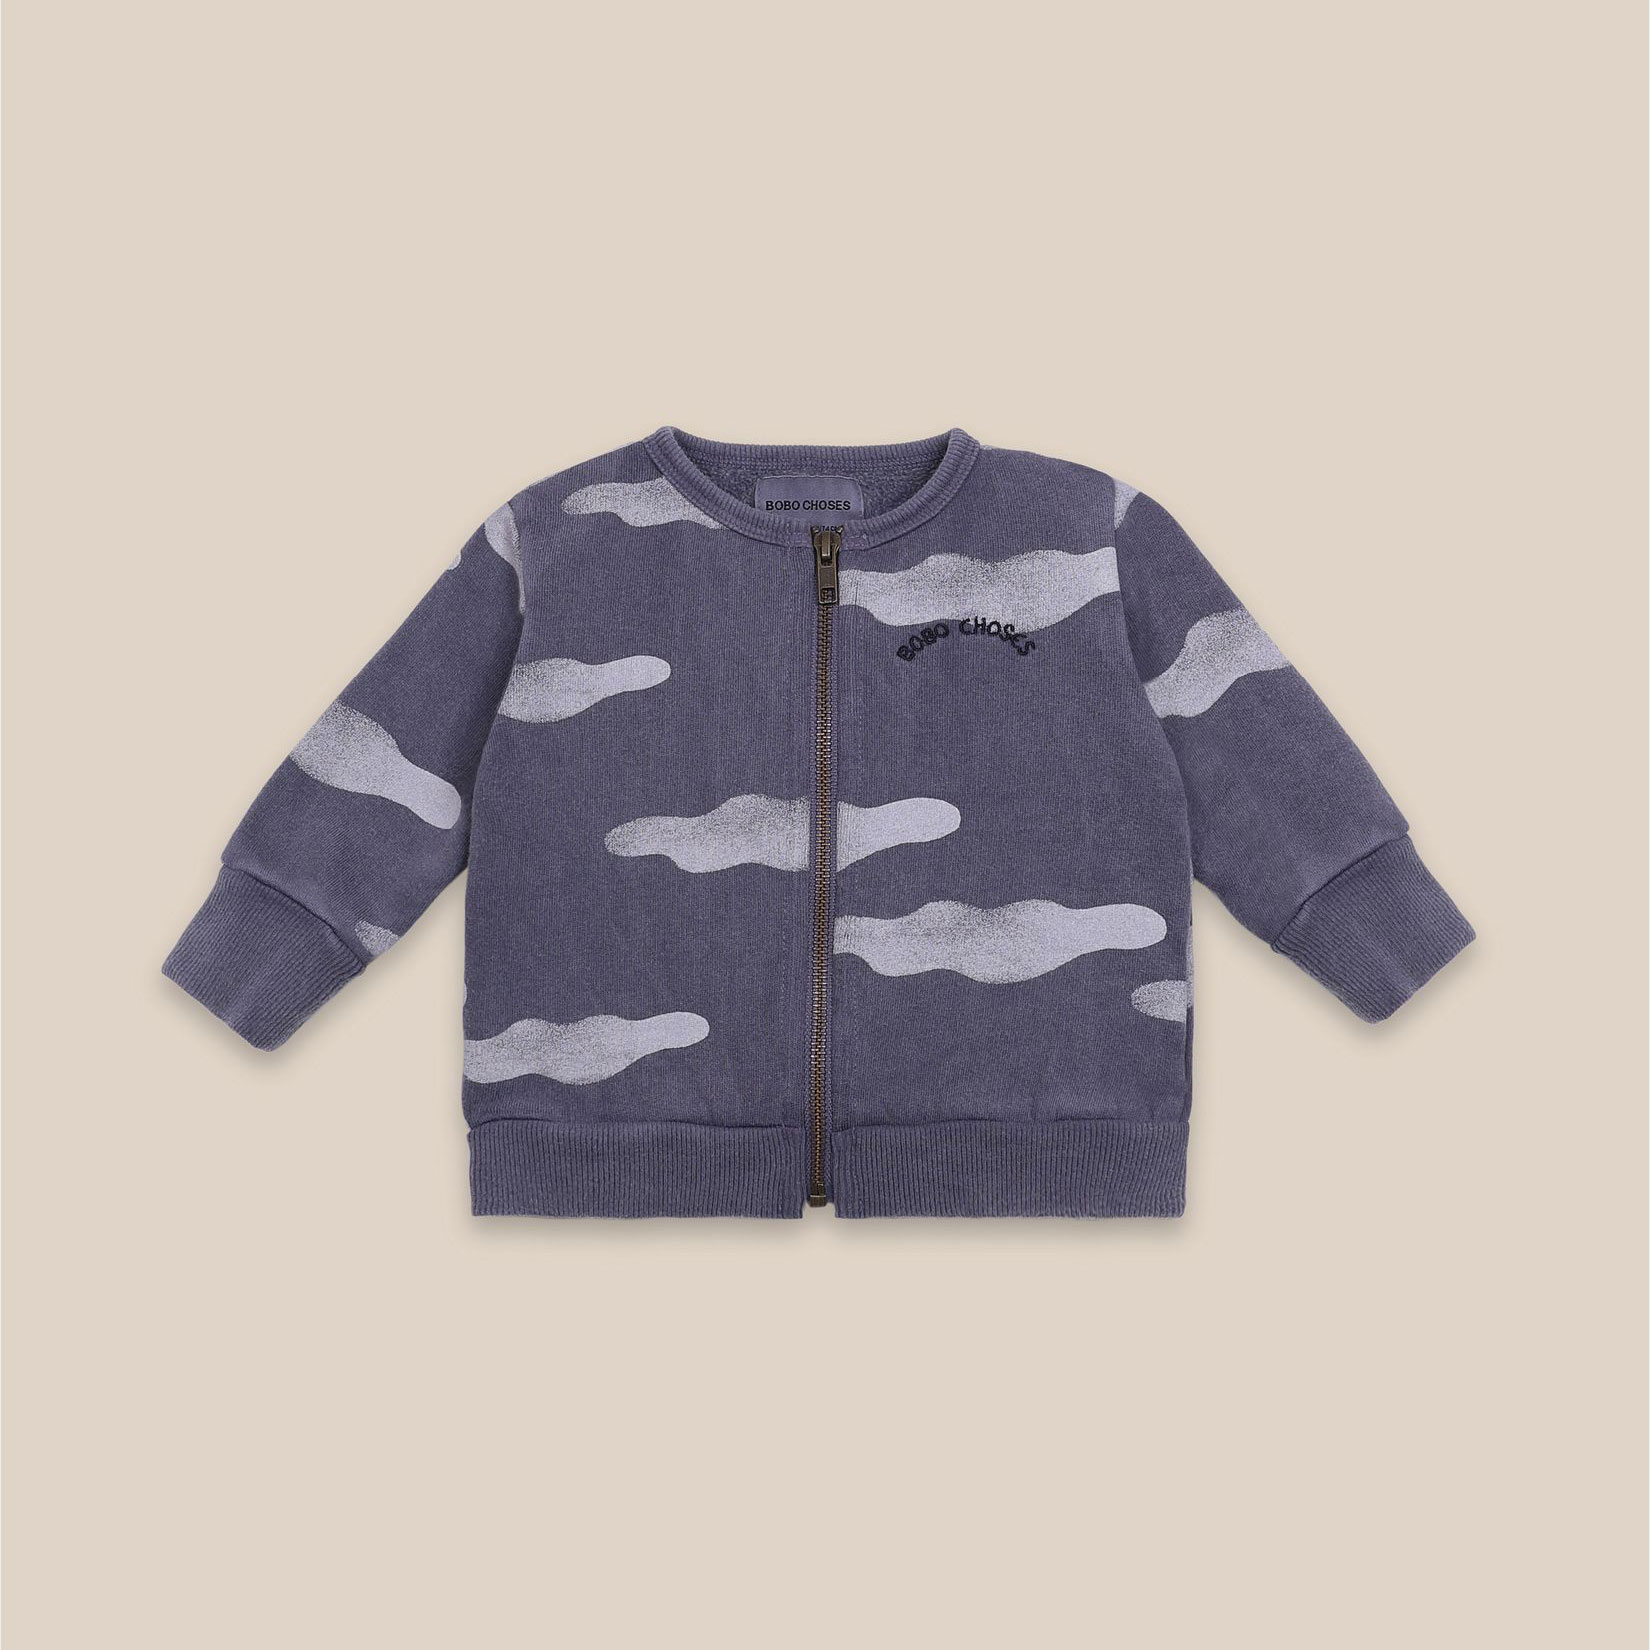 Bobo Choses - Baby Clouds All Over Zipped Sweatshirt